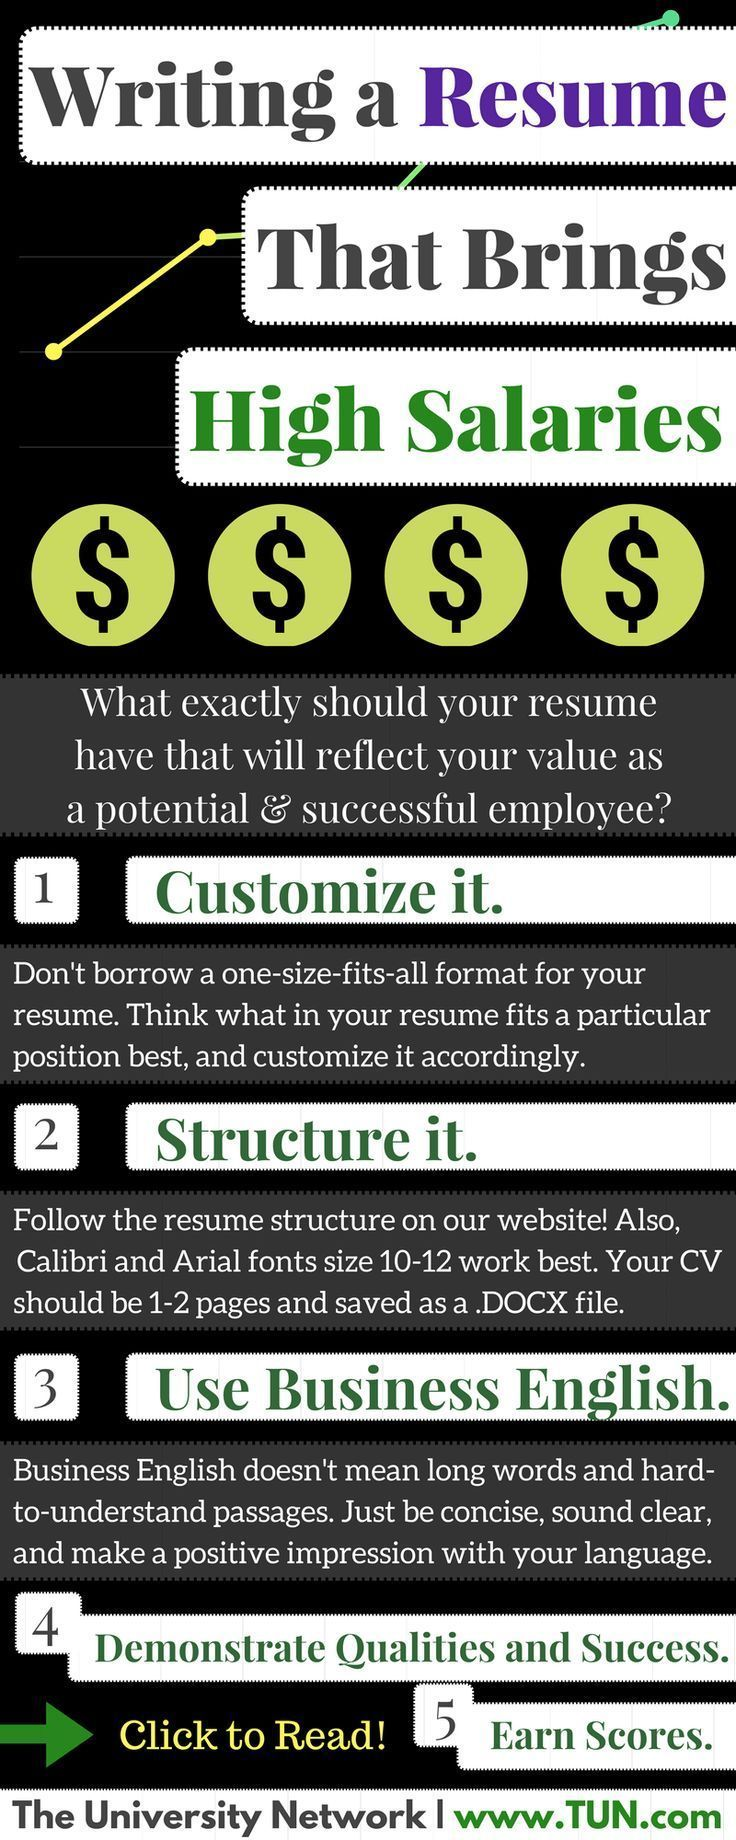 every word of your resume should cry about your worth for